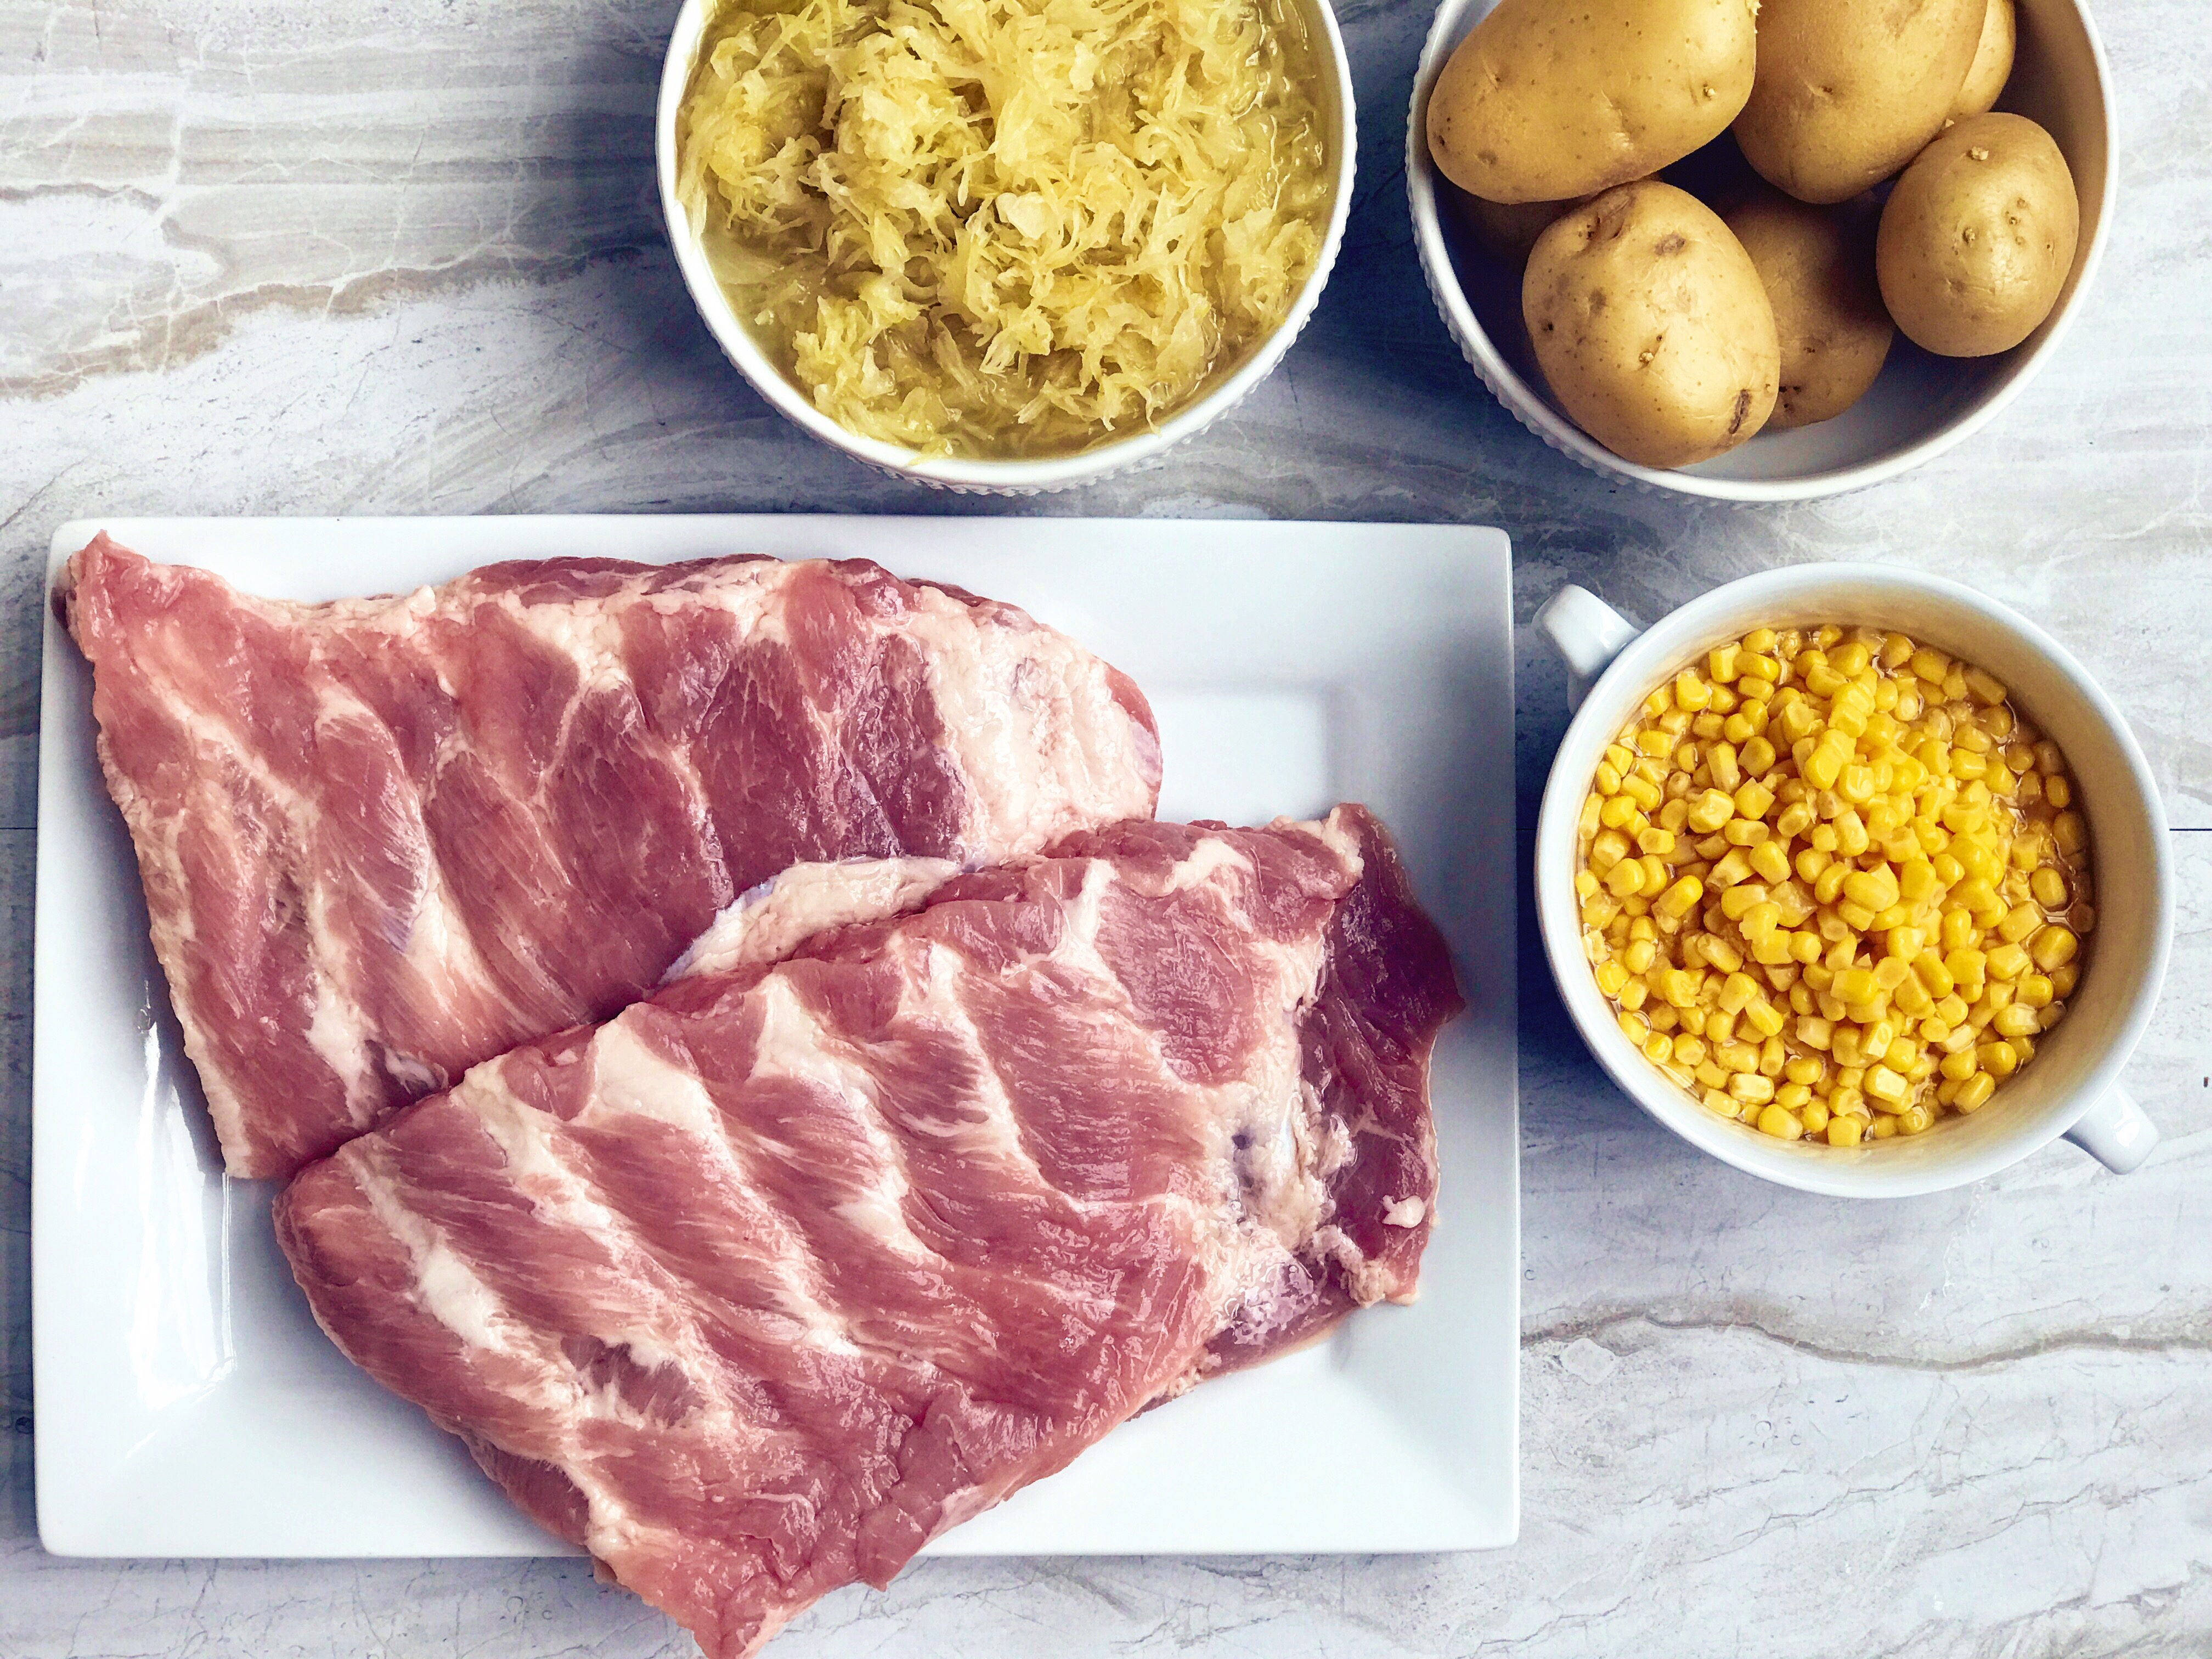 An image of some of the ingredients needed to make German Sauerkraut and Spareribs: pork spare ribs, corn, potatoes, and sauerkraut.